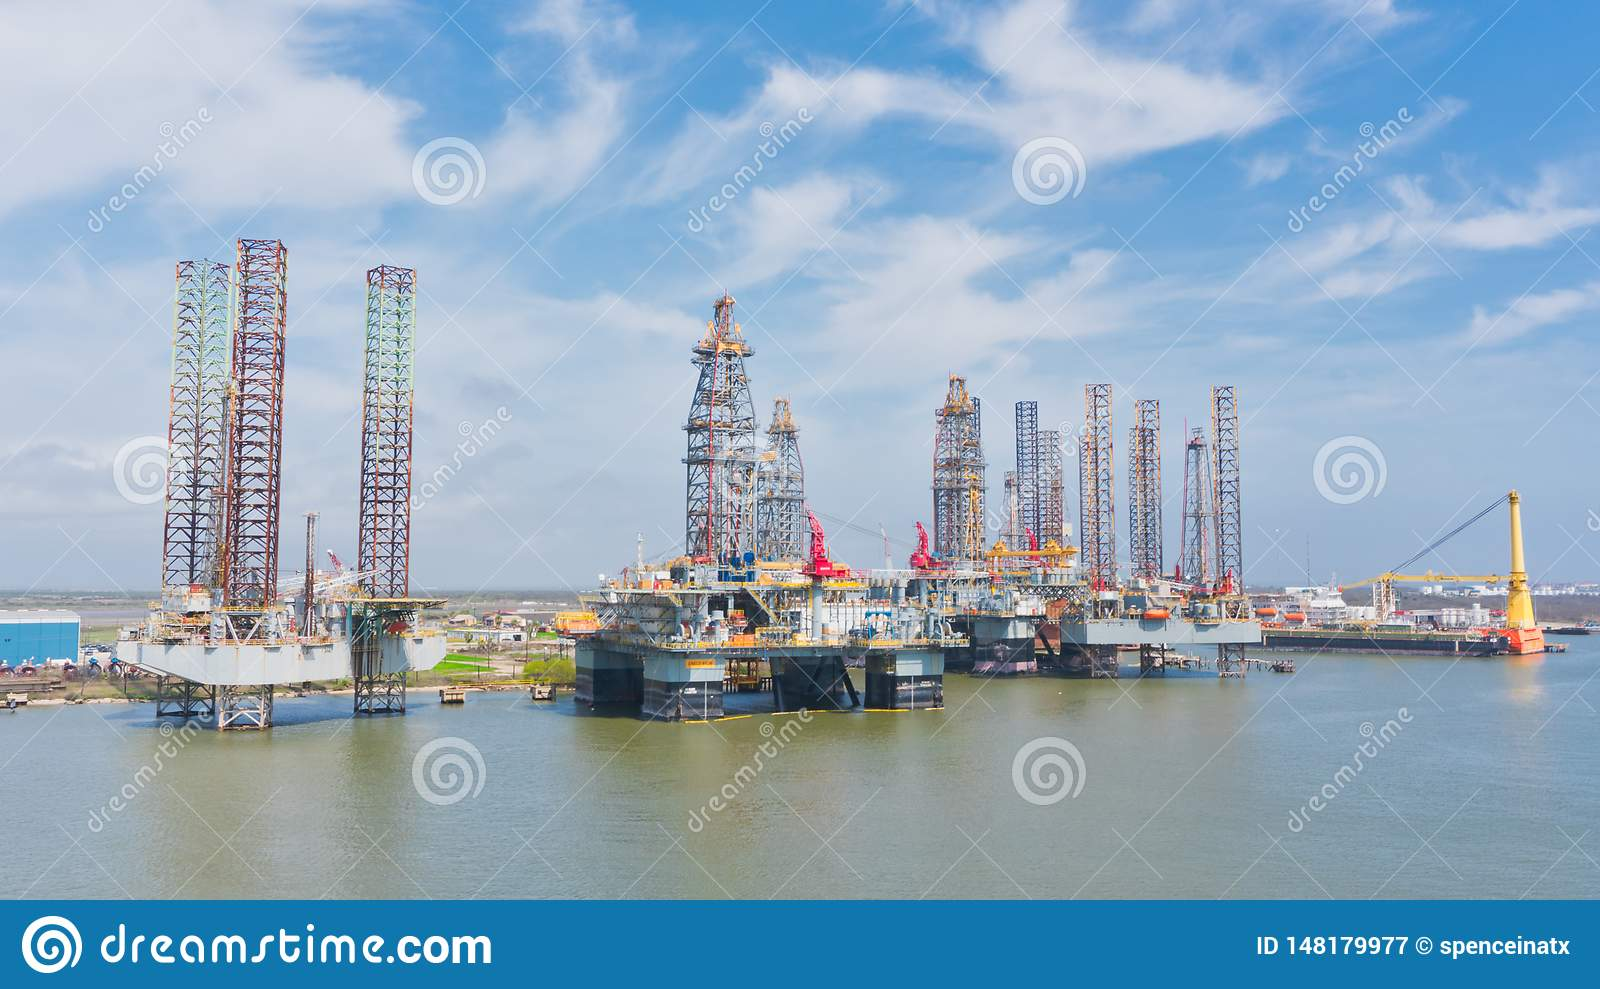 Oil rigs at the port